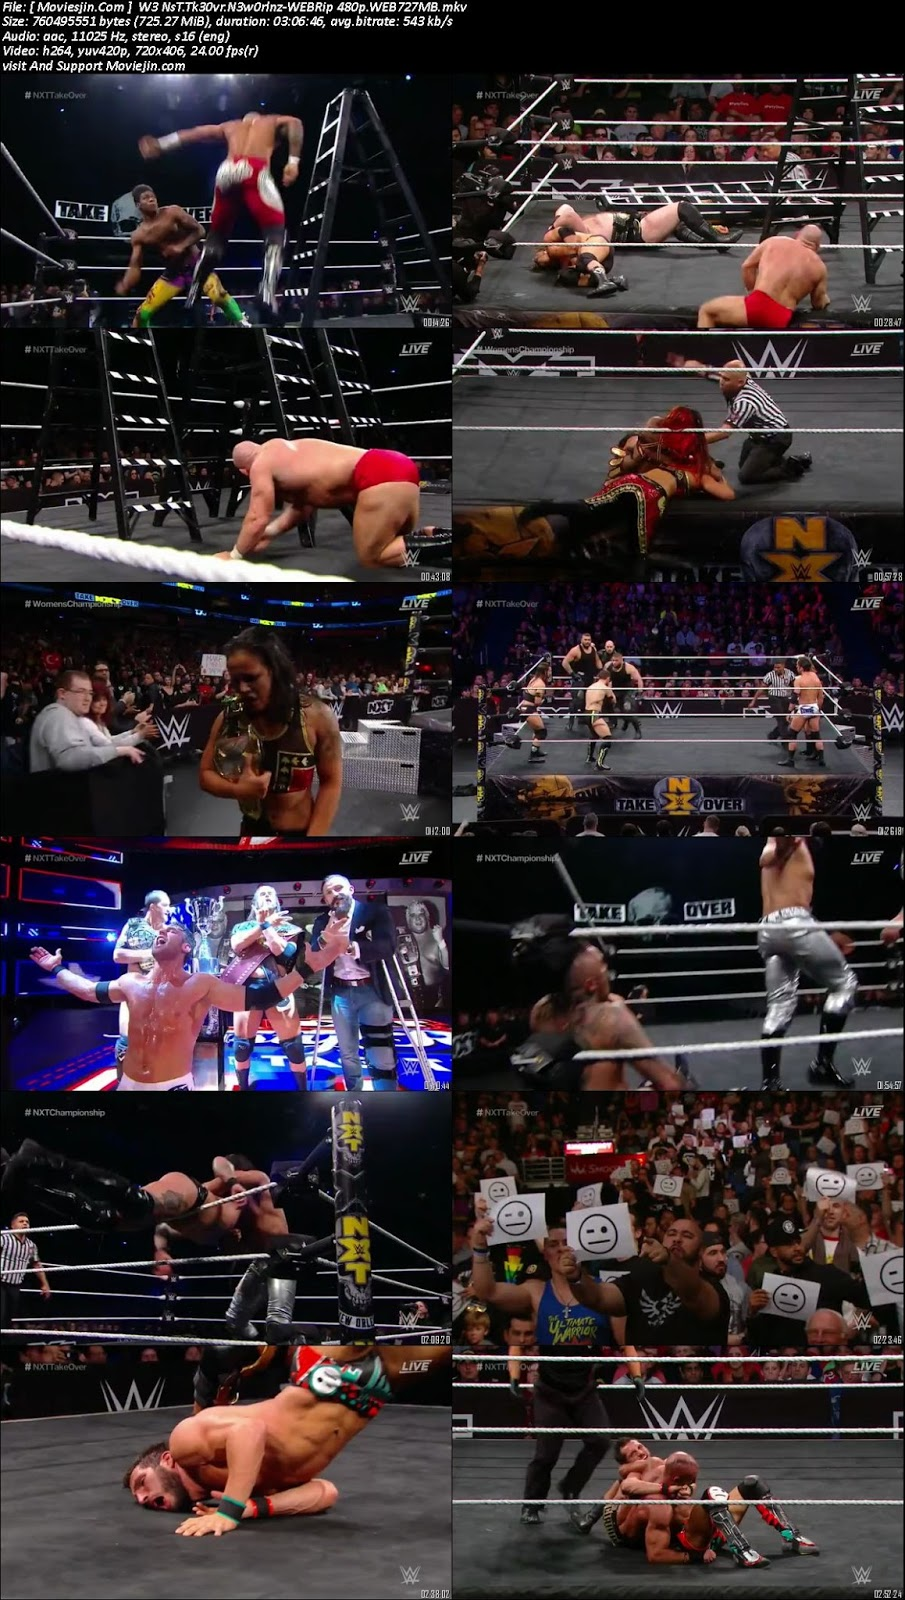 watch online WWE NXT TakeOver New Orleans 2018 700MB WEB-Rip 480p full 9xmovies, download khatrimaza